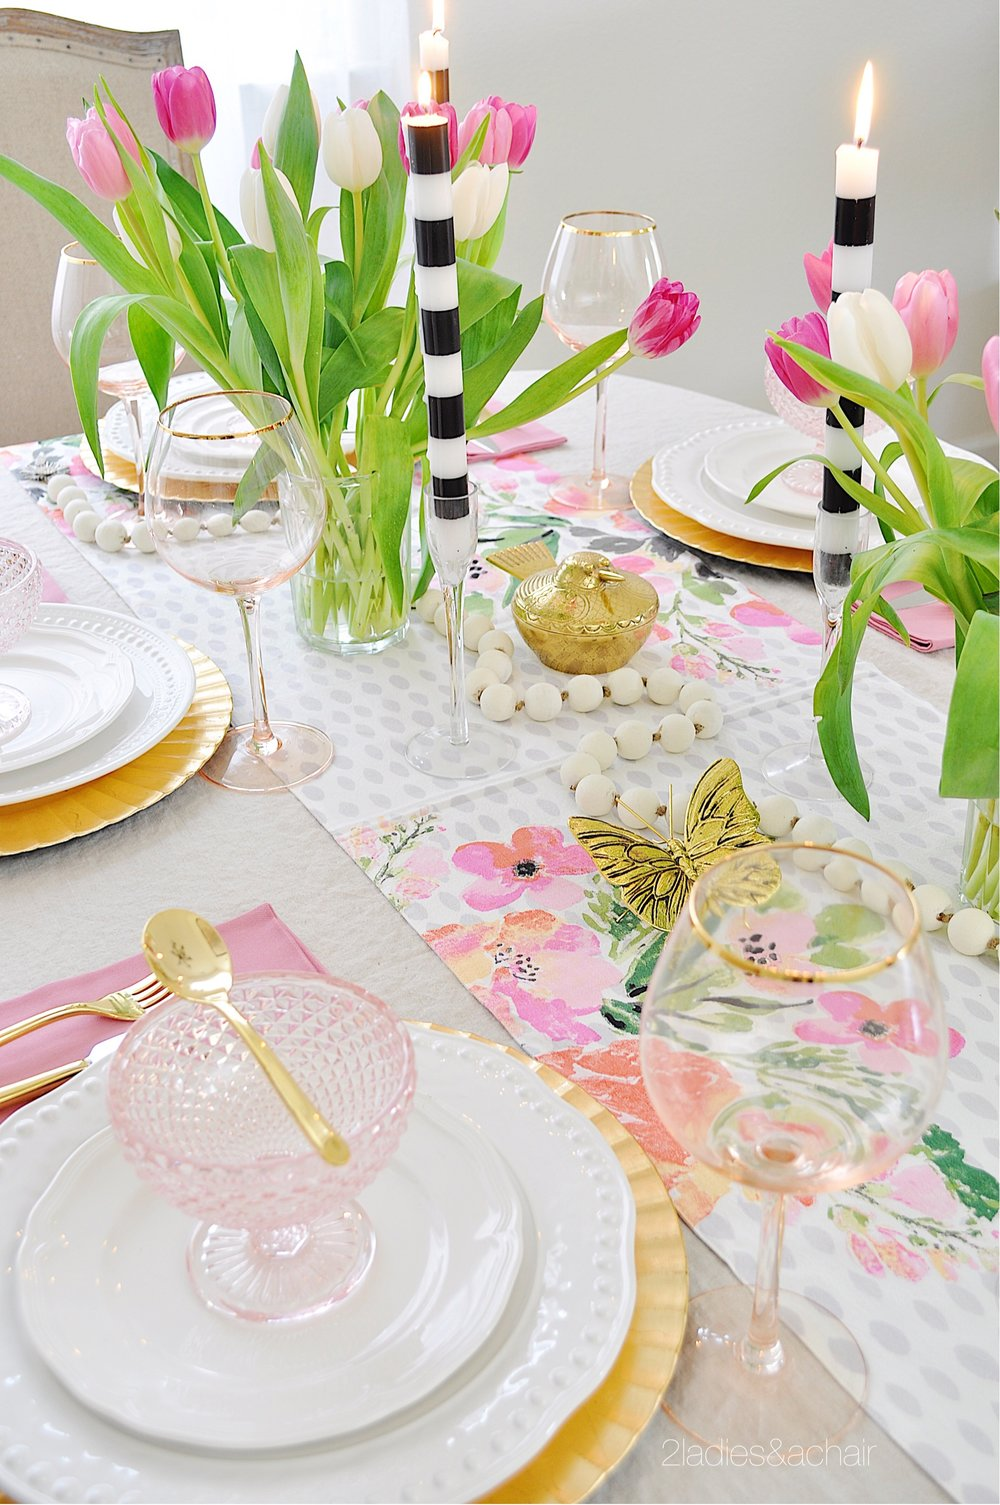 spring tablescape decor IMG_1938.JPG